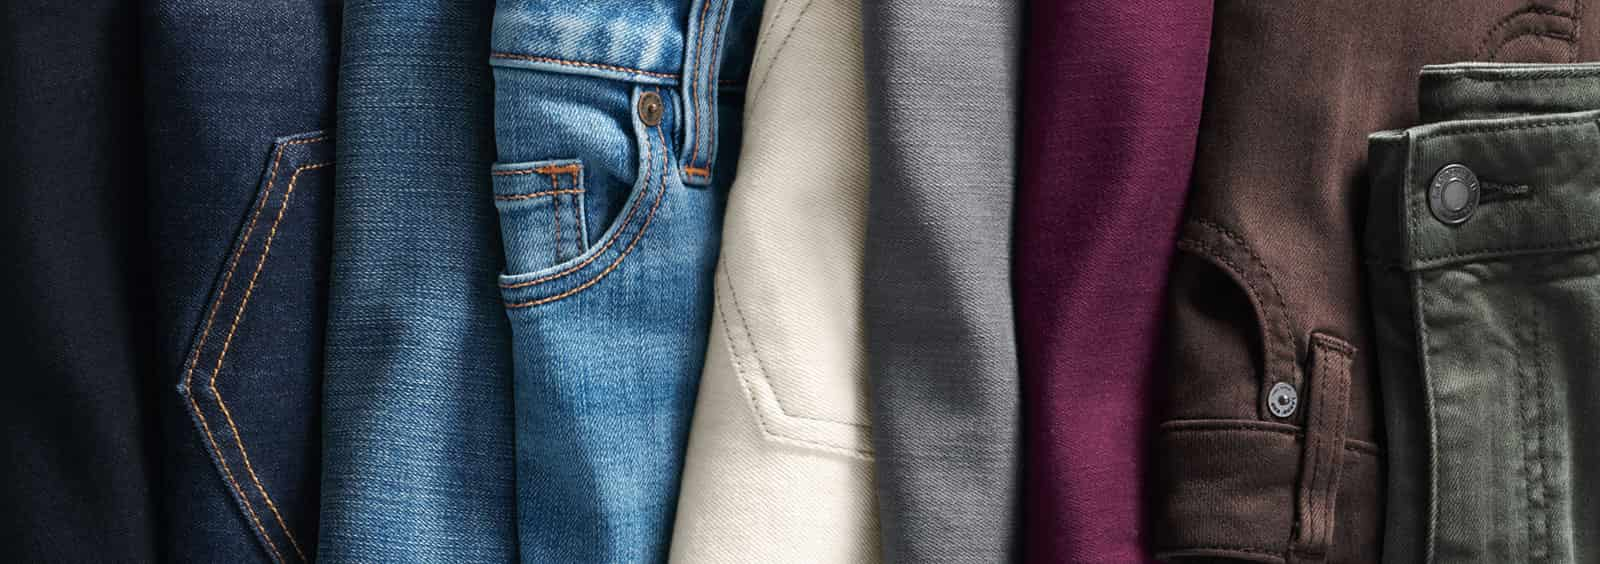 The Elements of Jeans: What to Look for in New Jeans